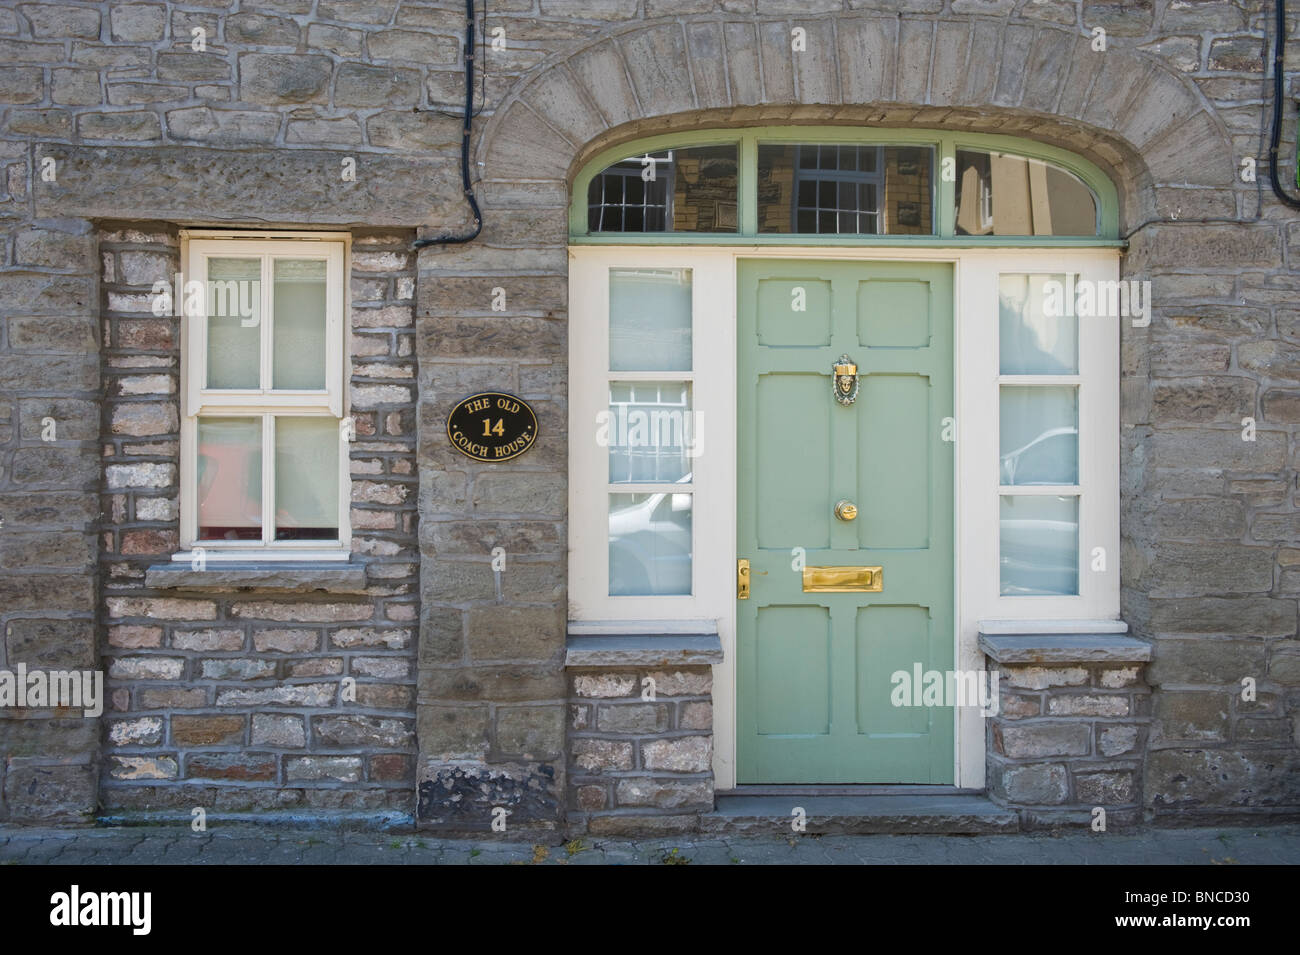 No 14 former coach house with green front door in Hay-on-Wye Powys Wales UK Stock Photo